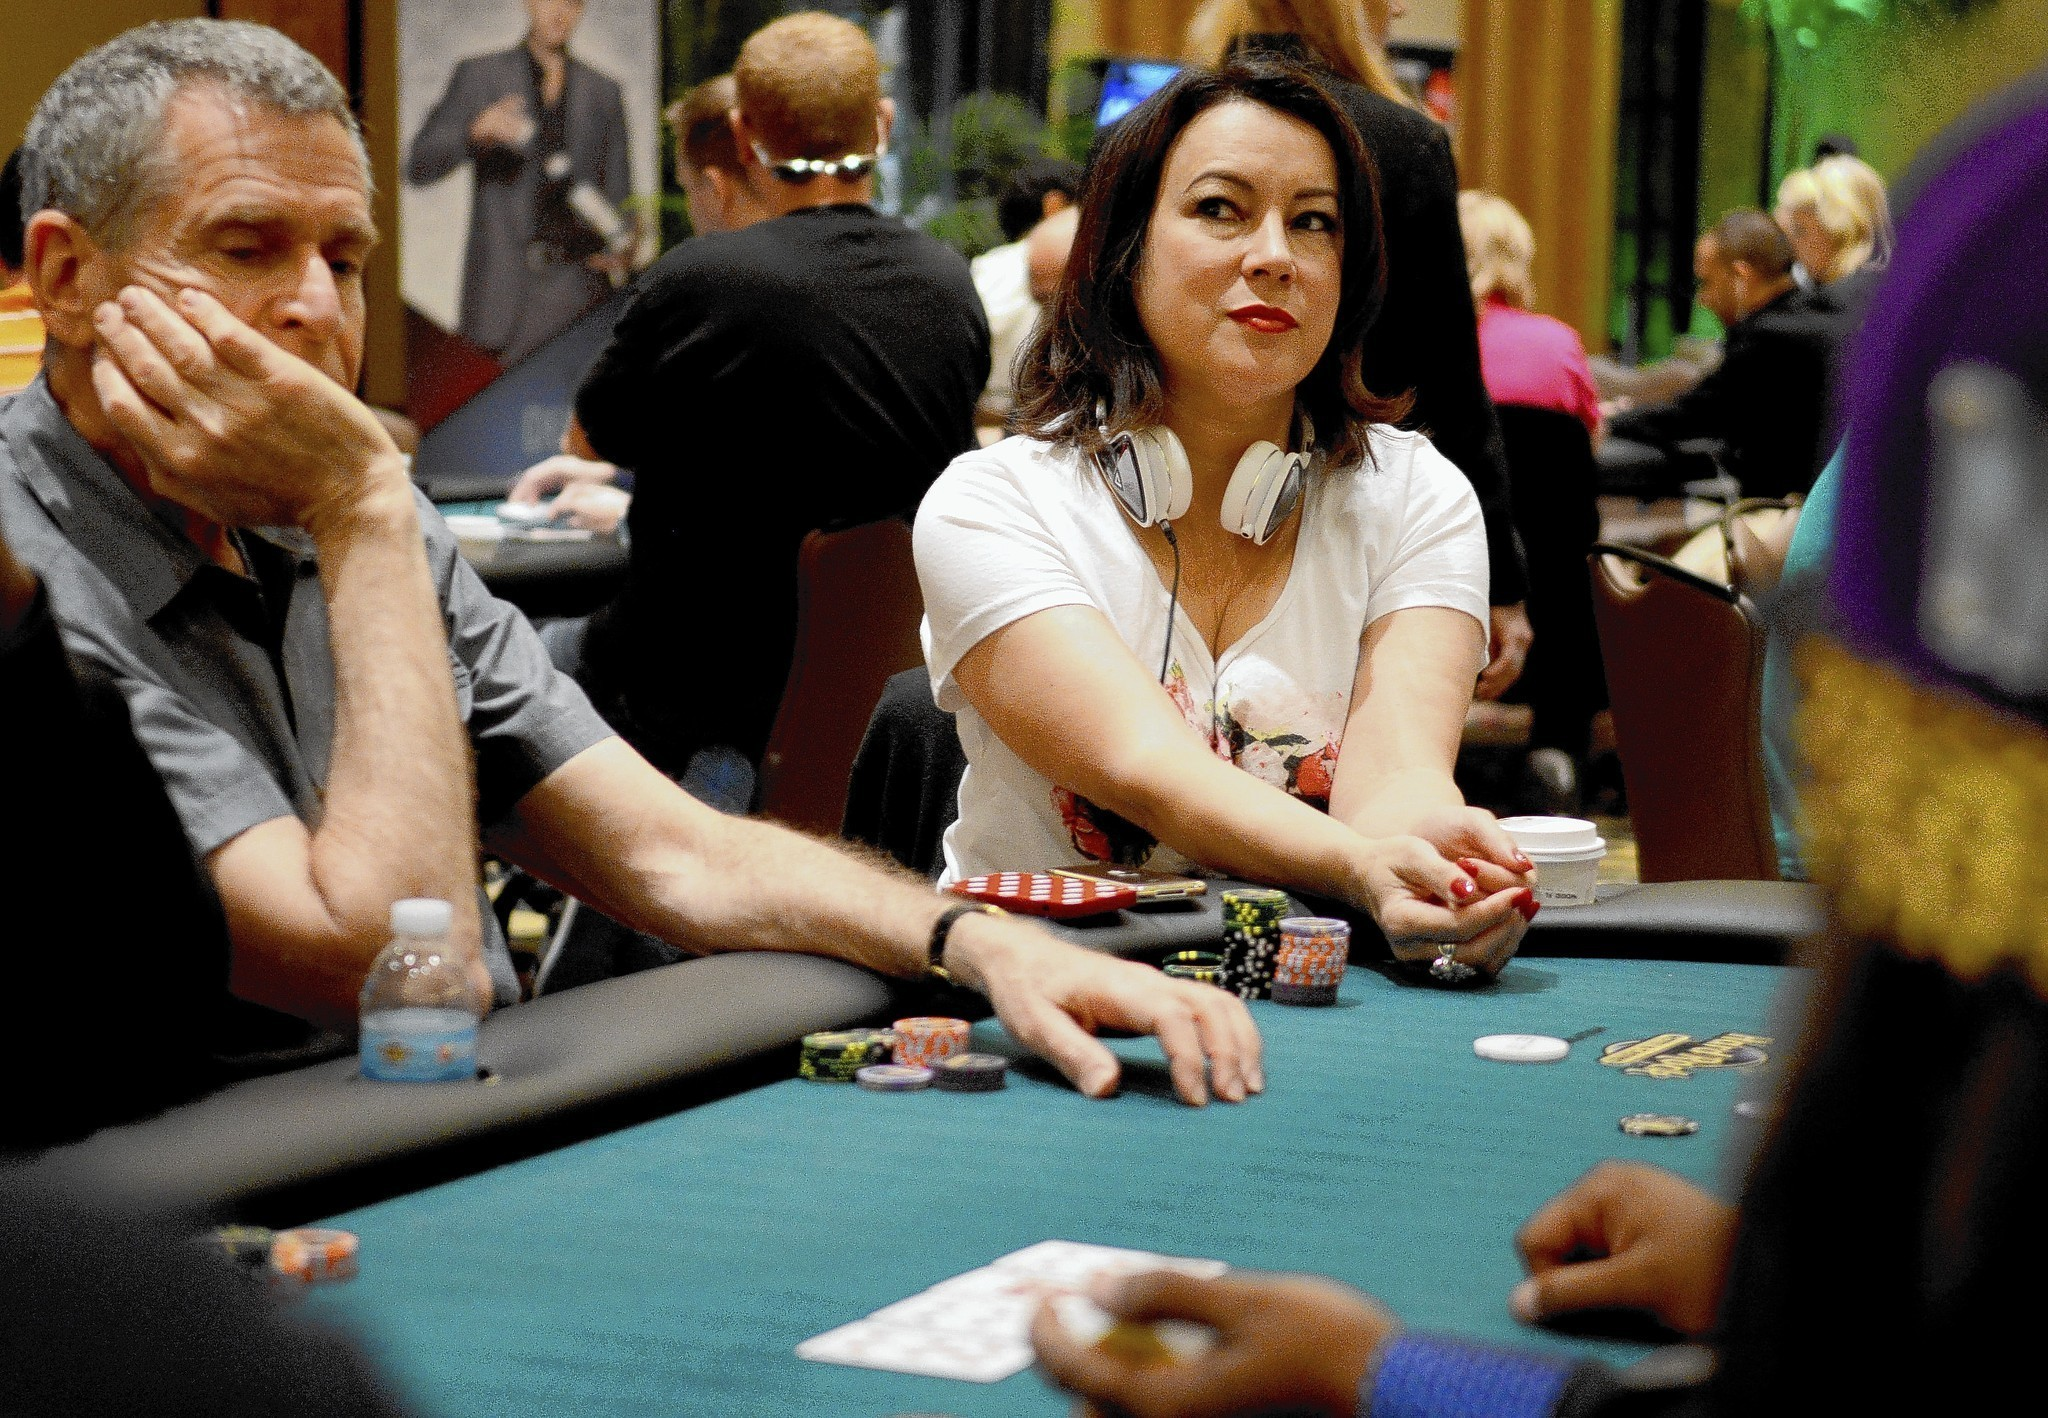 Jennifer Tilly at Seminole Hard Rock